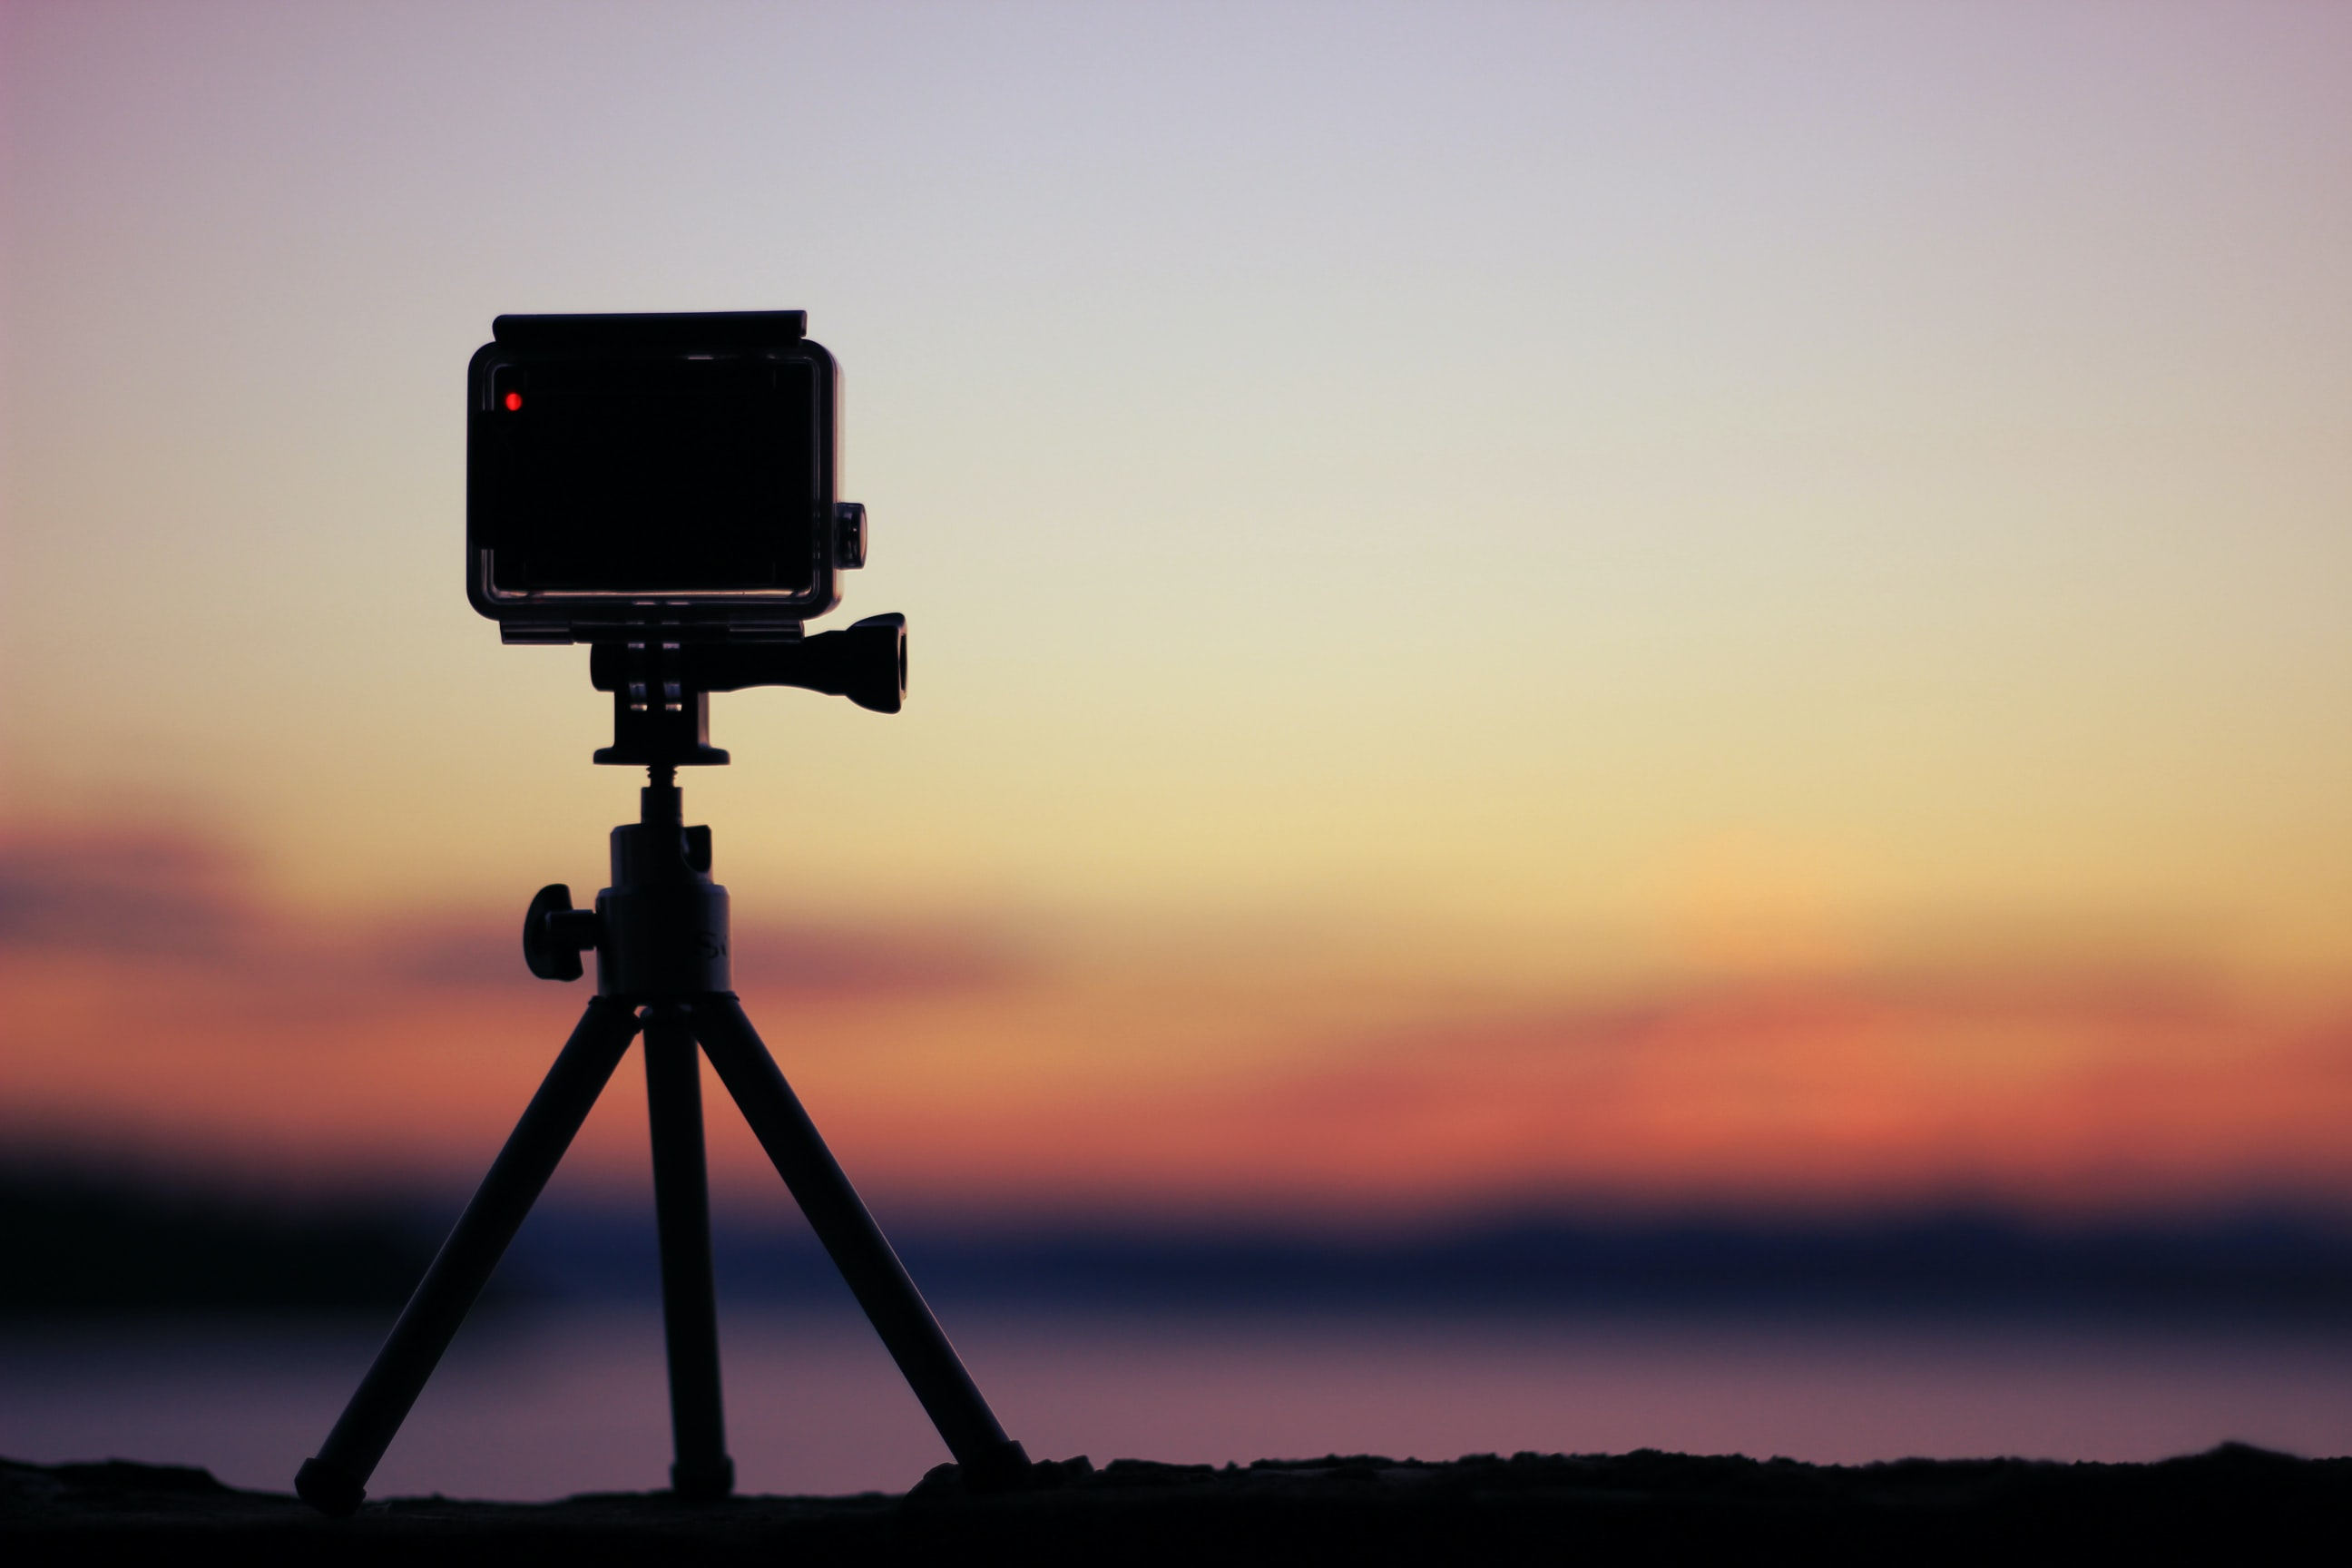 time lapse videos tripods videography photography equipment beginner photography